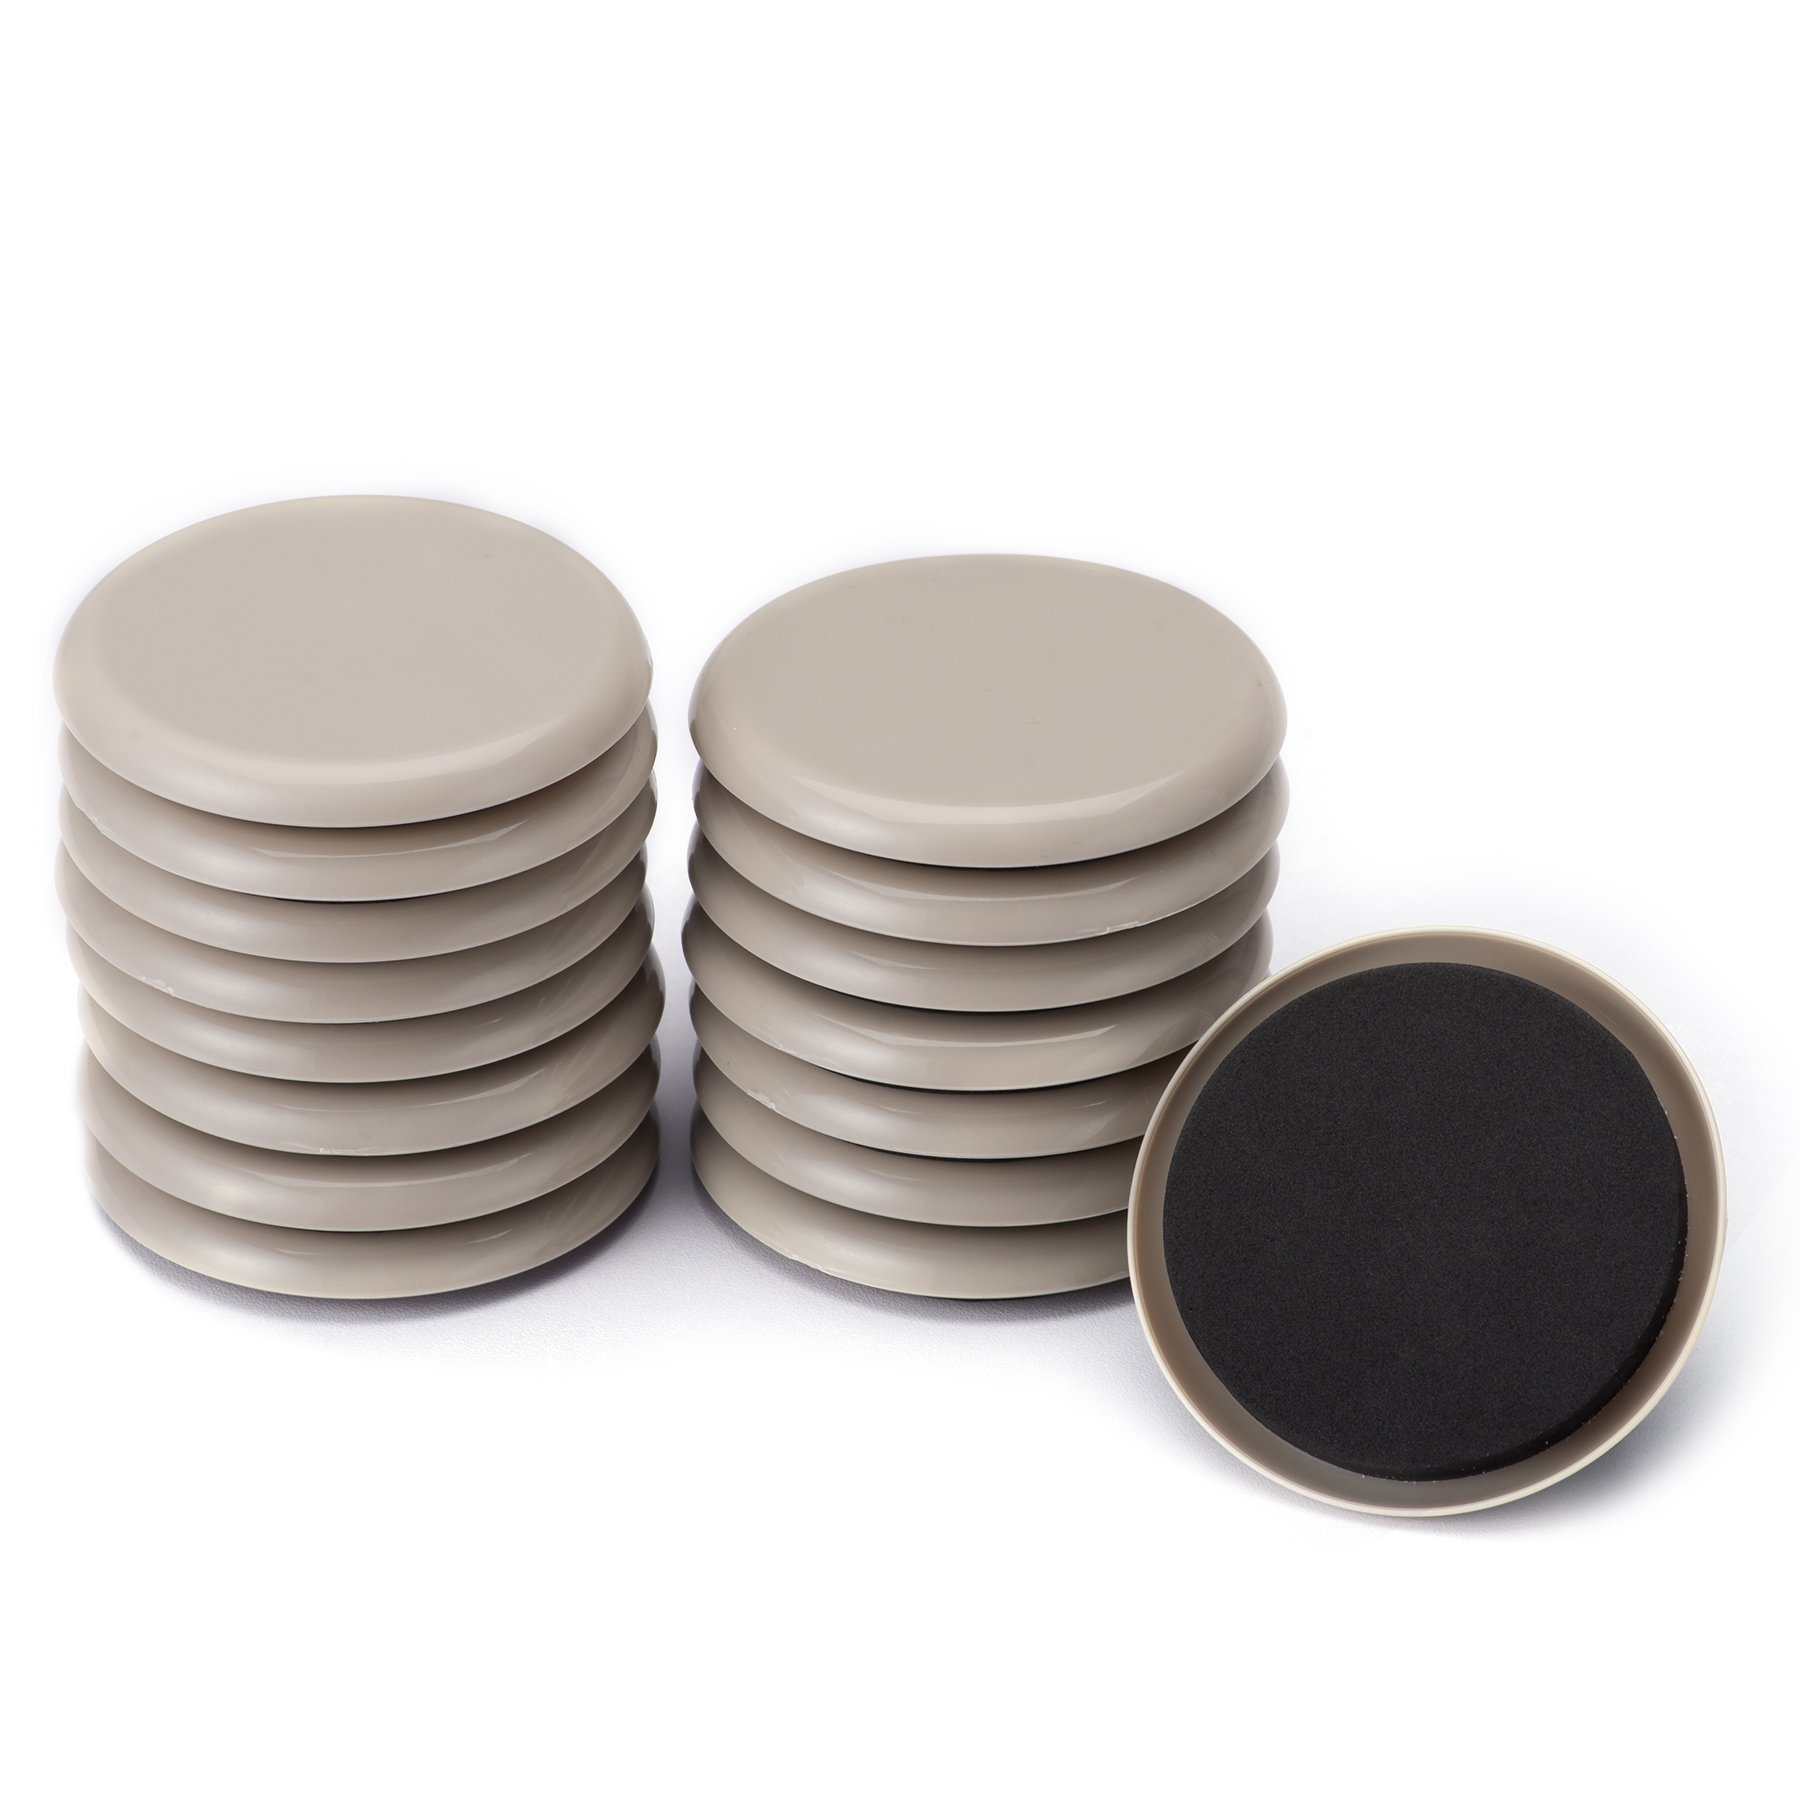 Furniture Sliders, CO-Z Reusable Round Movers for Heavy Furniture for Carpet. (16 Pack, 3.5 inch)